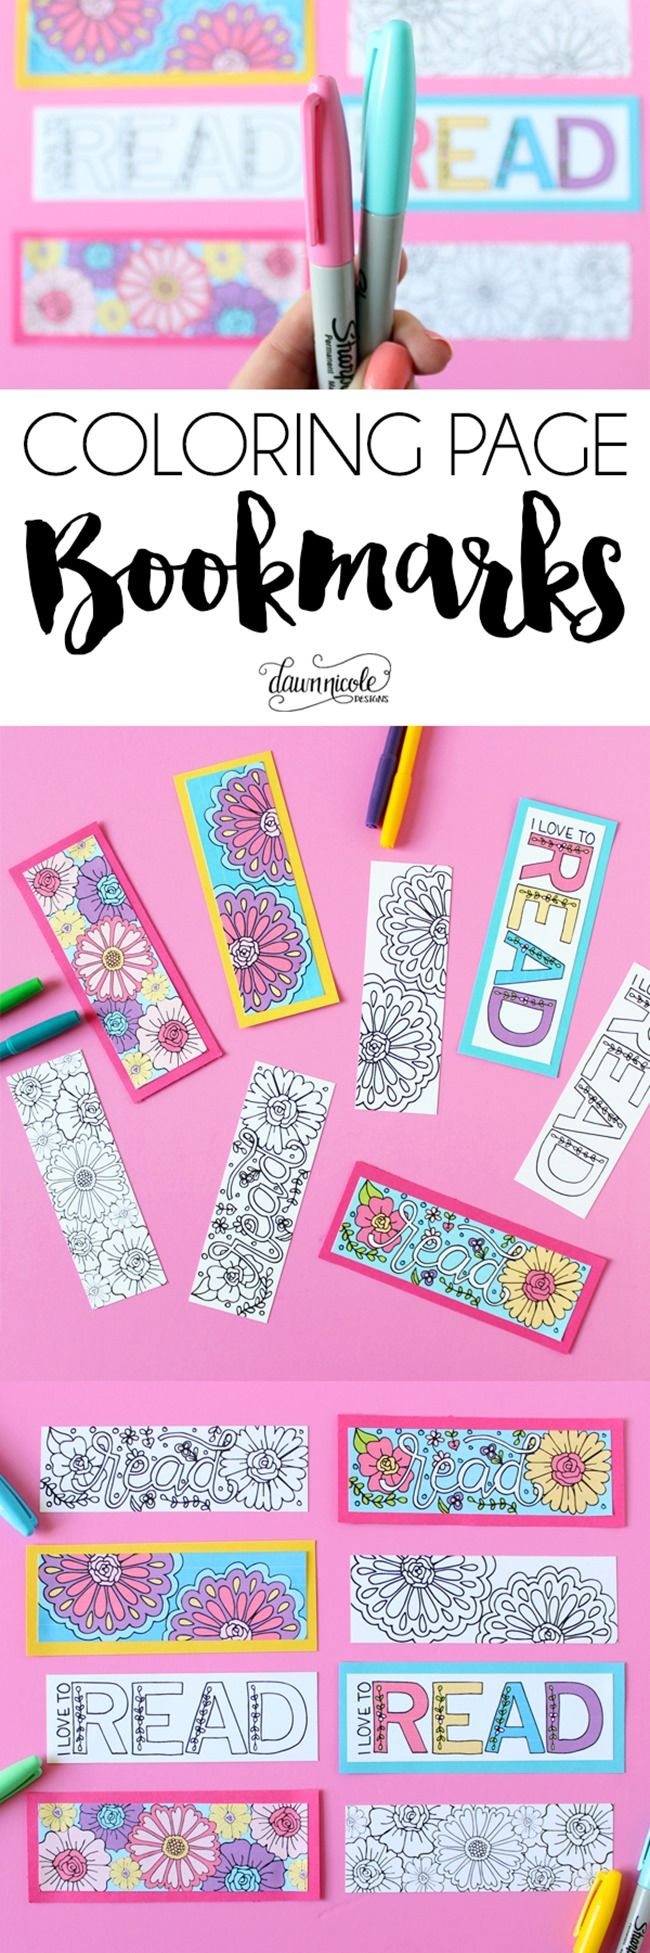 44 best Bookmarks & Reading Crafts images on Pinterest